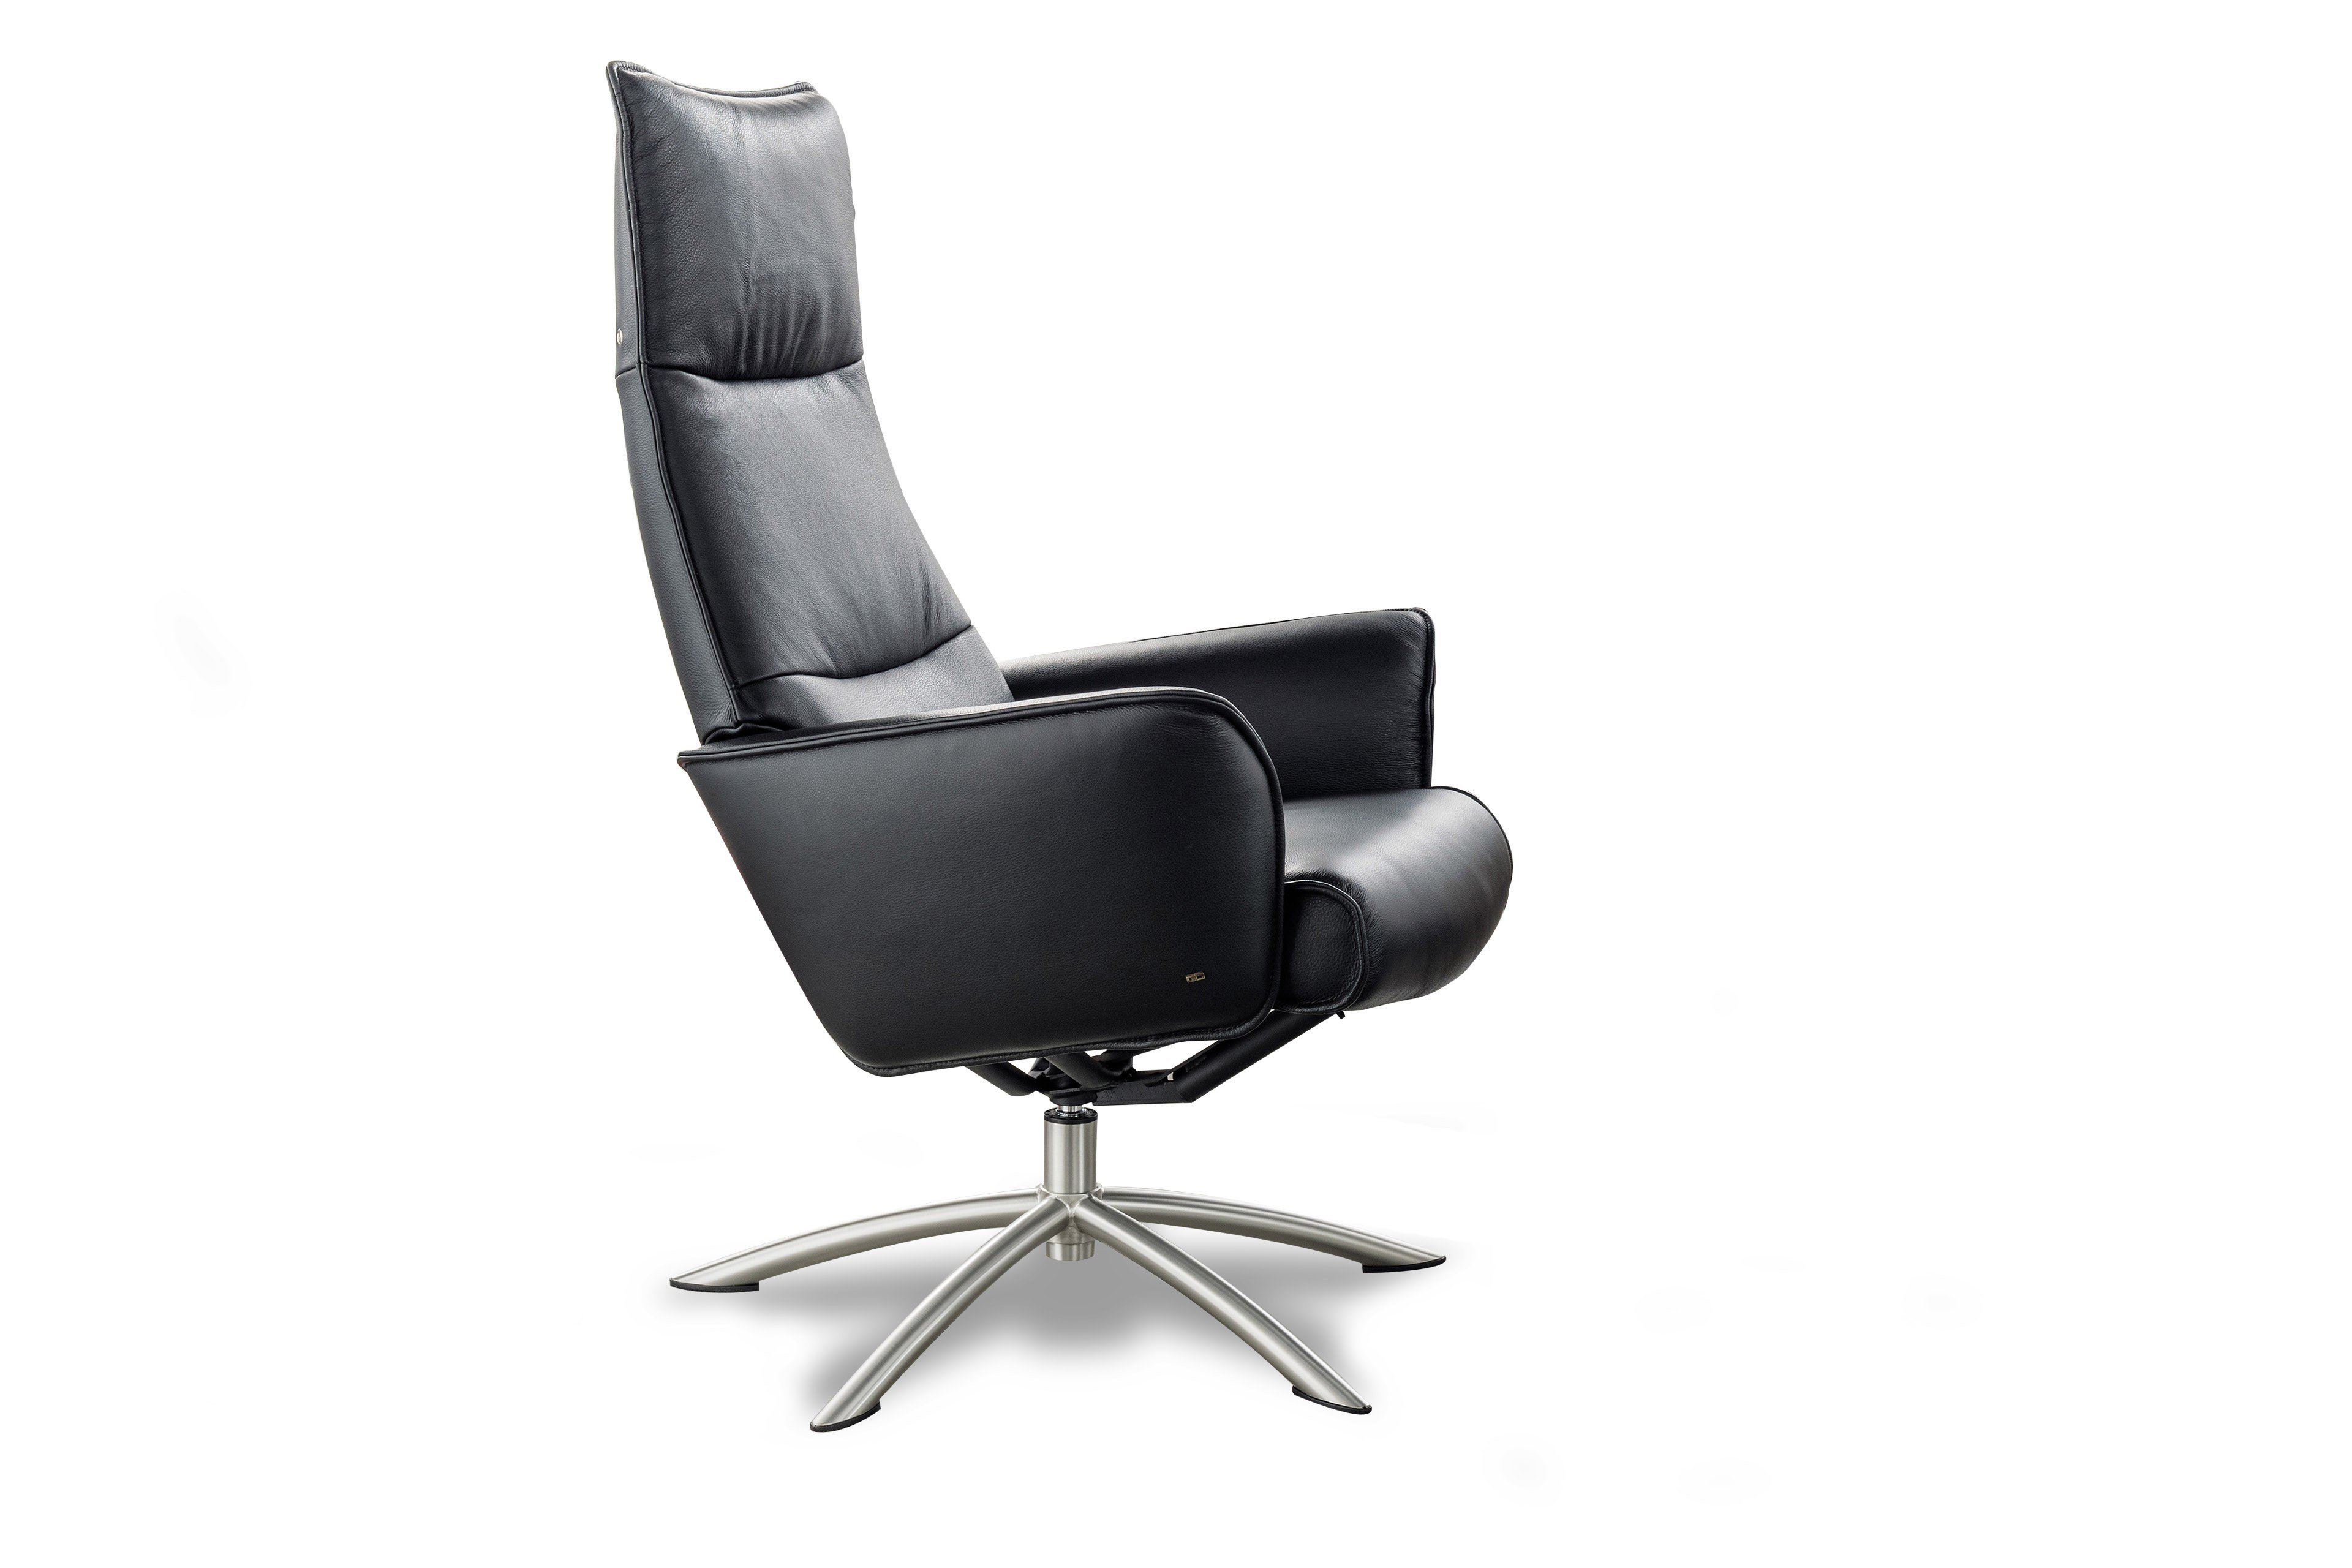 Relaxsessel schwarz simple conform timeout relaxsessel for Fernseh liegesessel